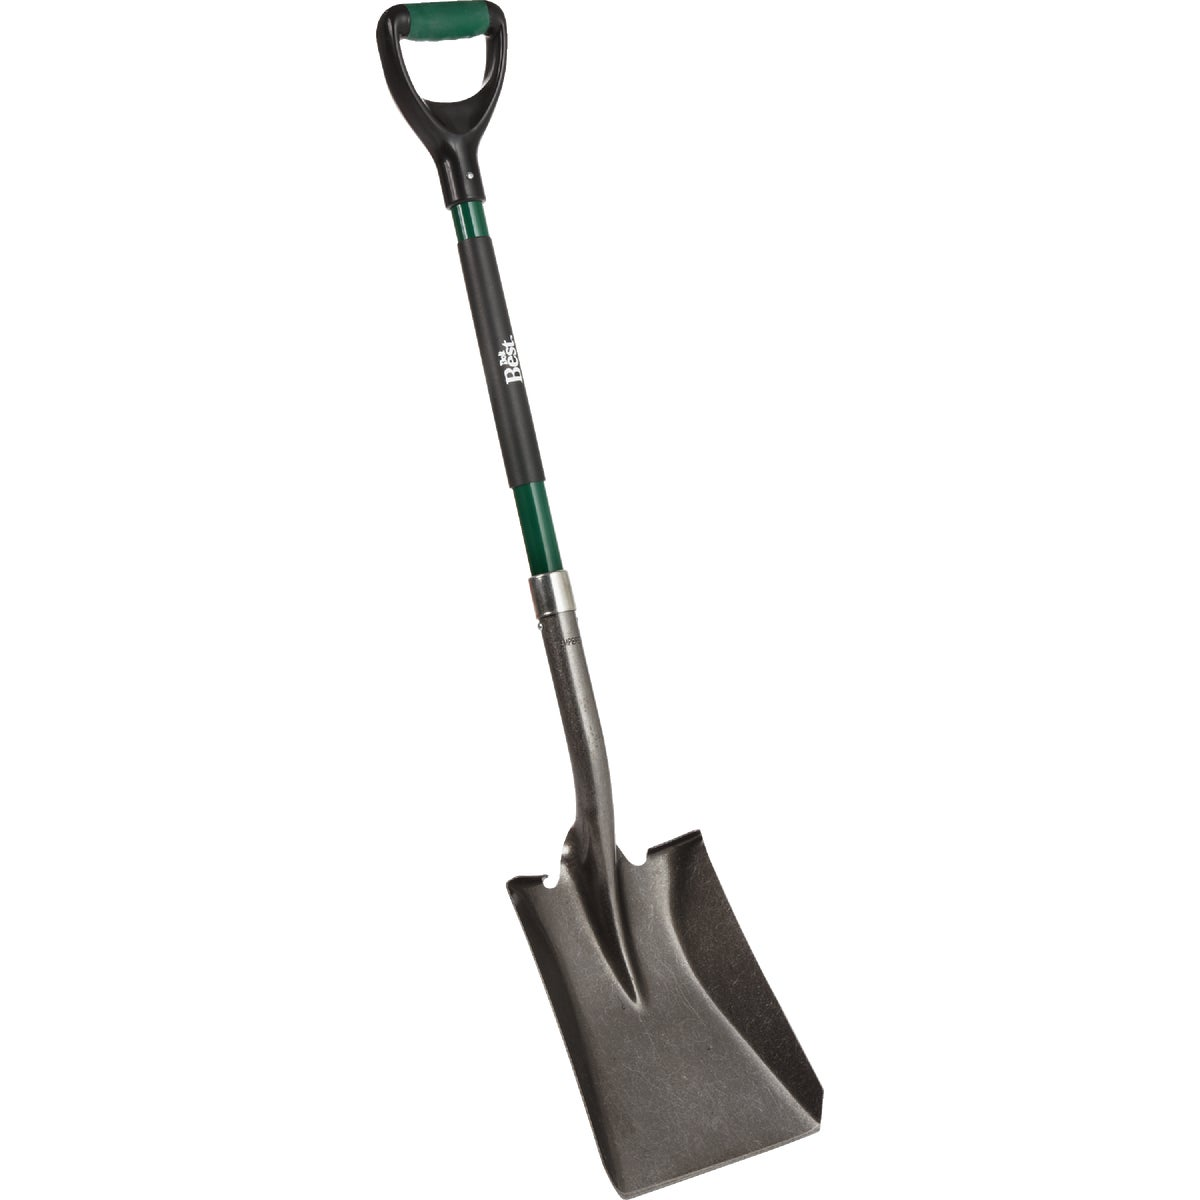 FBGL D-HDL SQ PT SHOVEL - YN-8SF3-5FD by Do it Best